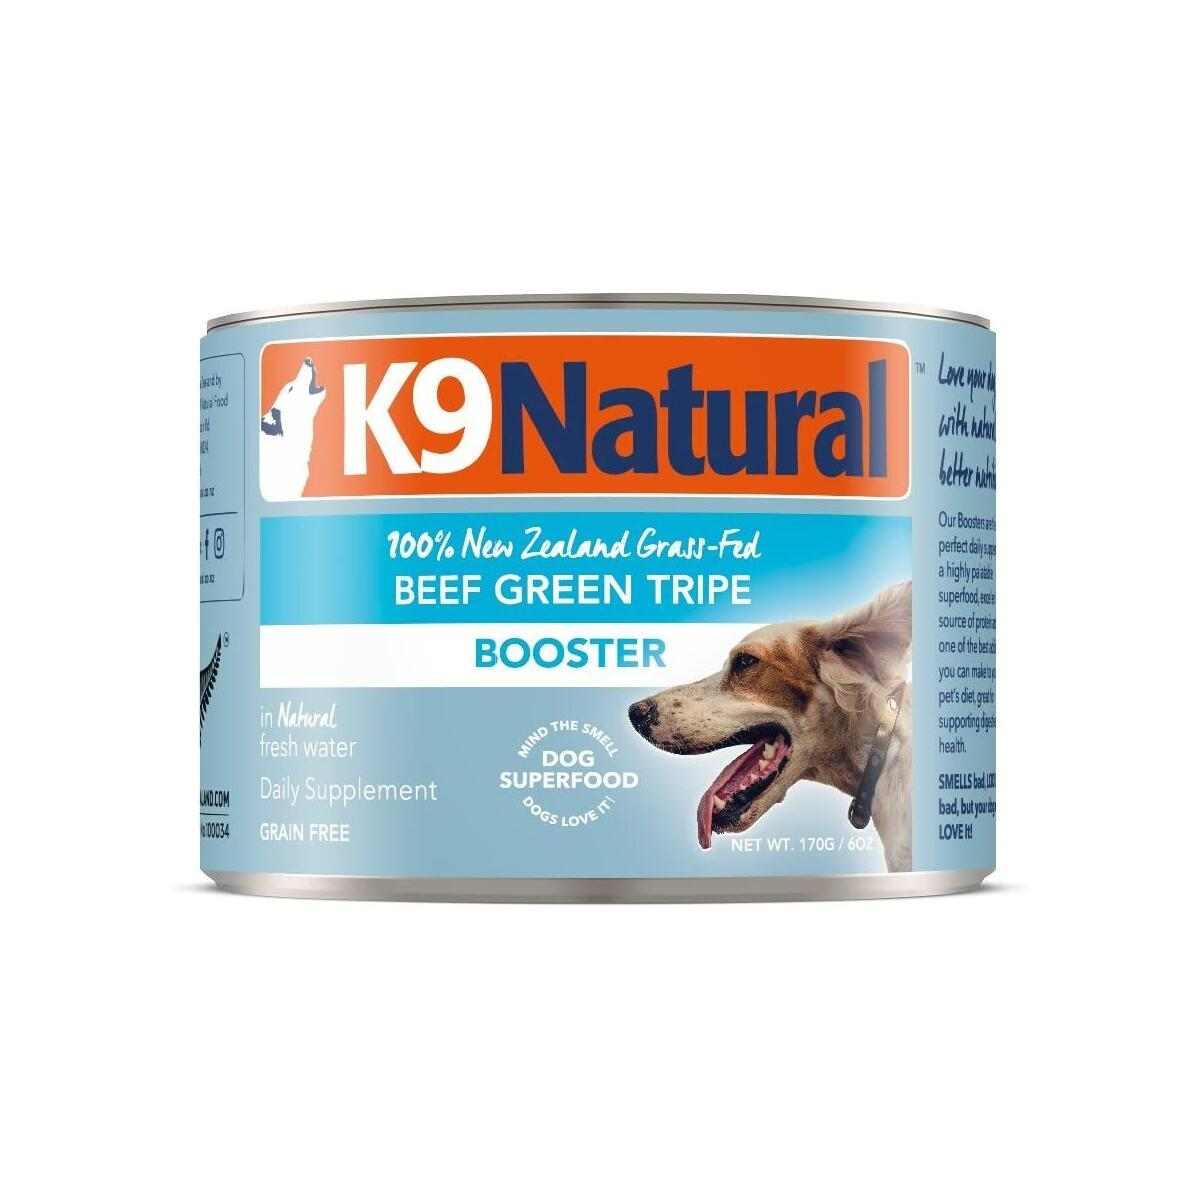 Beef Green Tripe 6oz 24 pack - K9 Natural BPA-Free & Gelatin-Free Canned Dog Food Supplement Booster